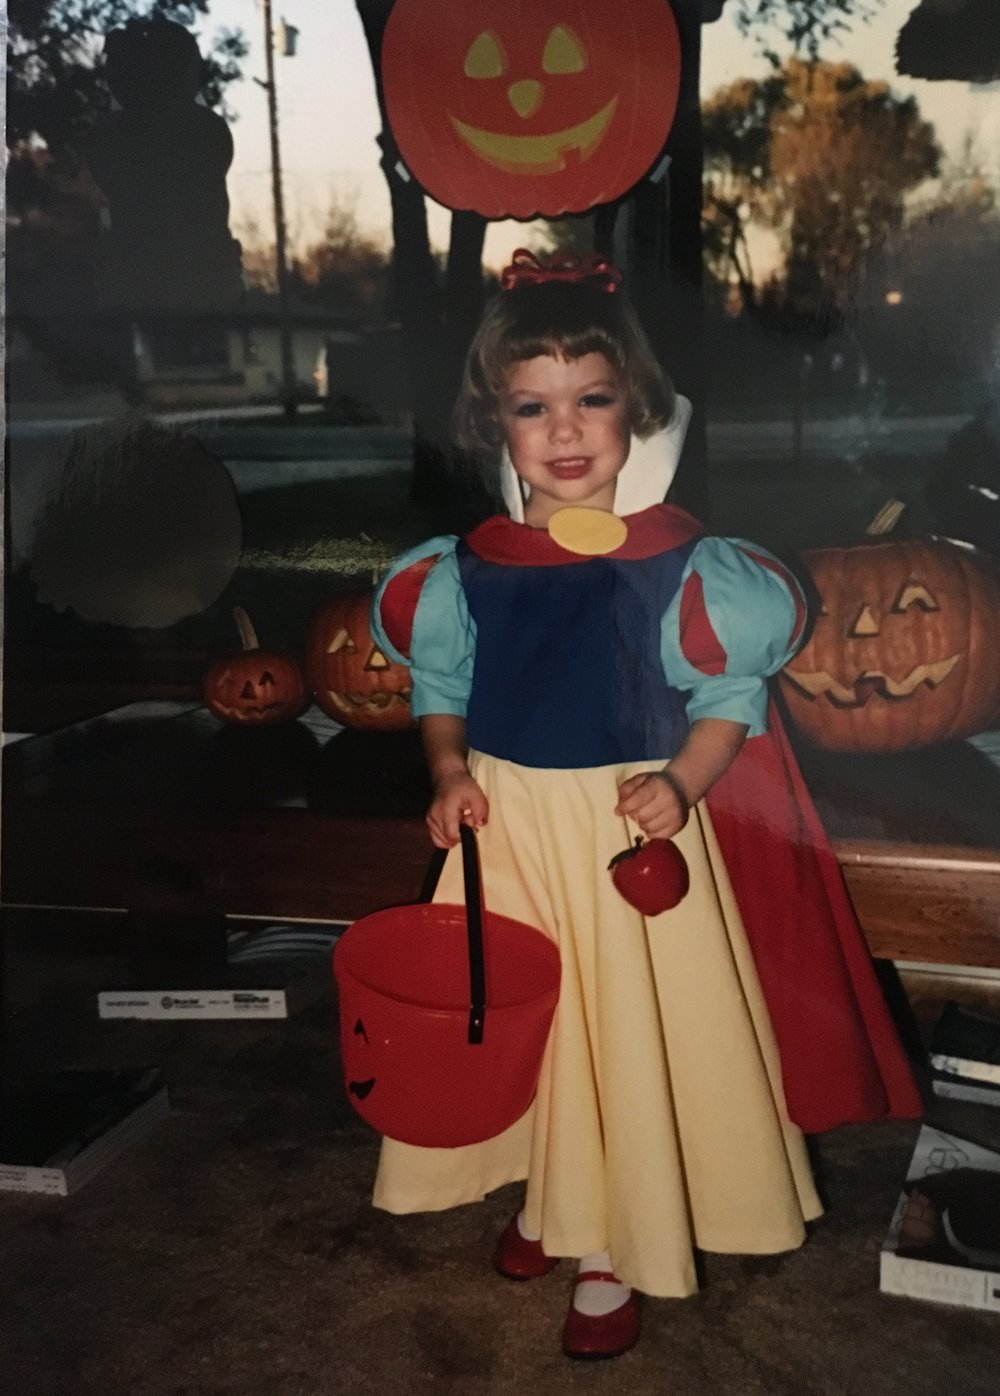 I have no idea how my mom made those puff sleeves, but boy...that took talent! Side note, I also think I cut my own bangs...